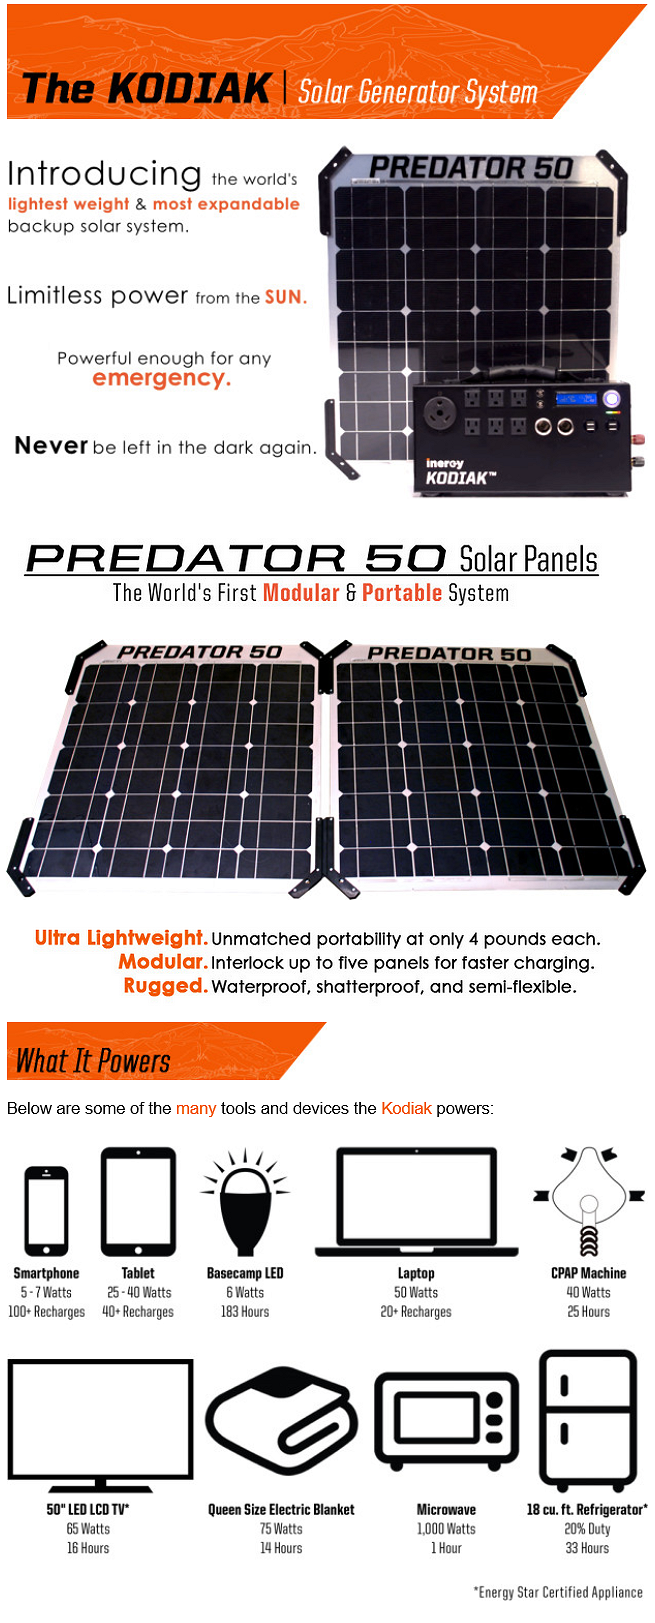 The Kodiak Off Grid Home Solar System In A Box It S The World S Lightest Weight Most Expanda Solar Panels Advantages Of Solar Energy Solar Panel Technology